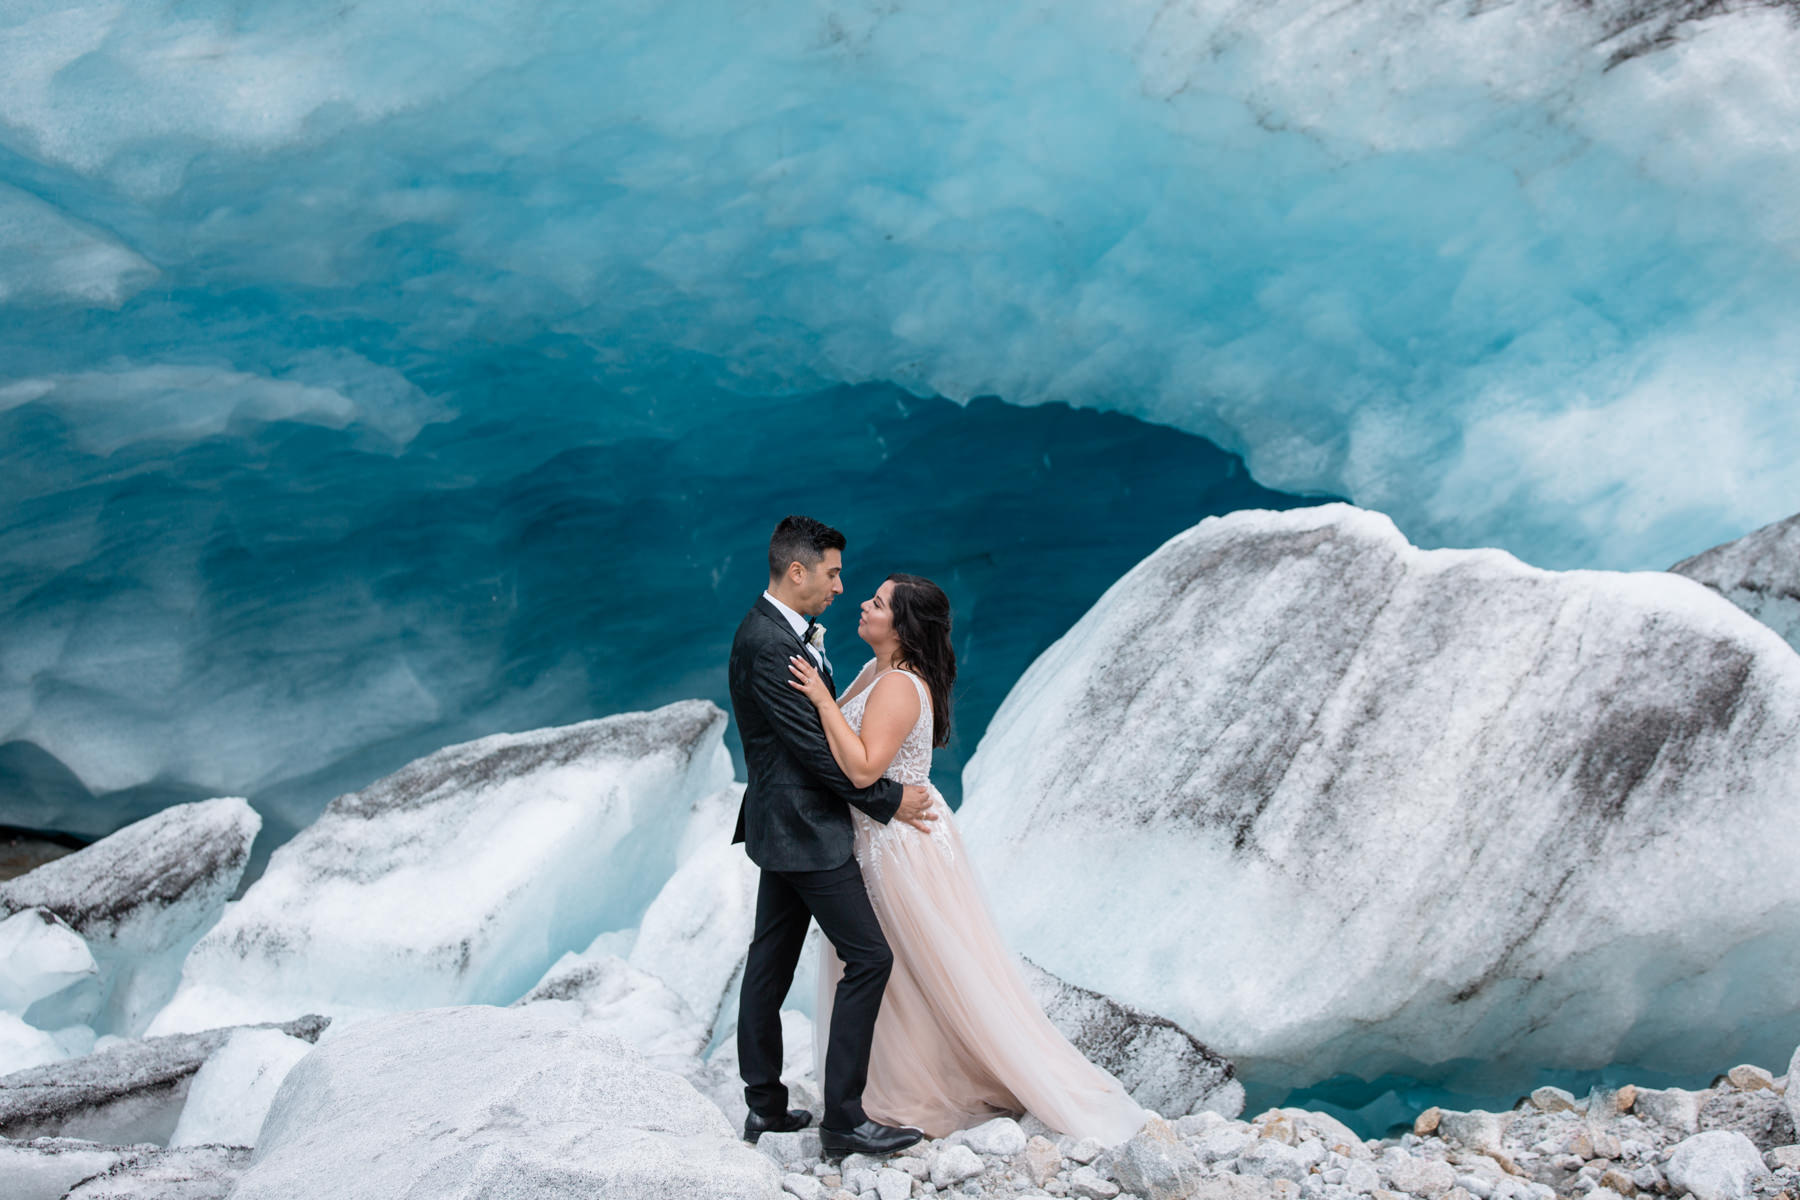 Helicopter elopement packages BC - ice cave wedding